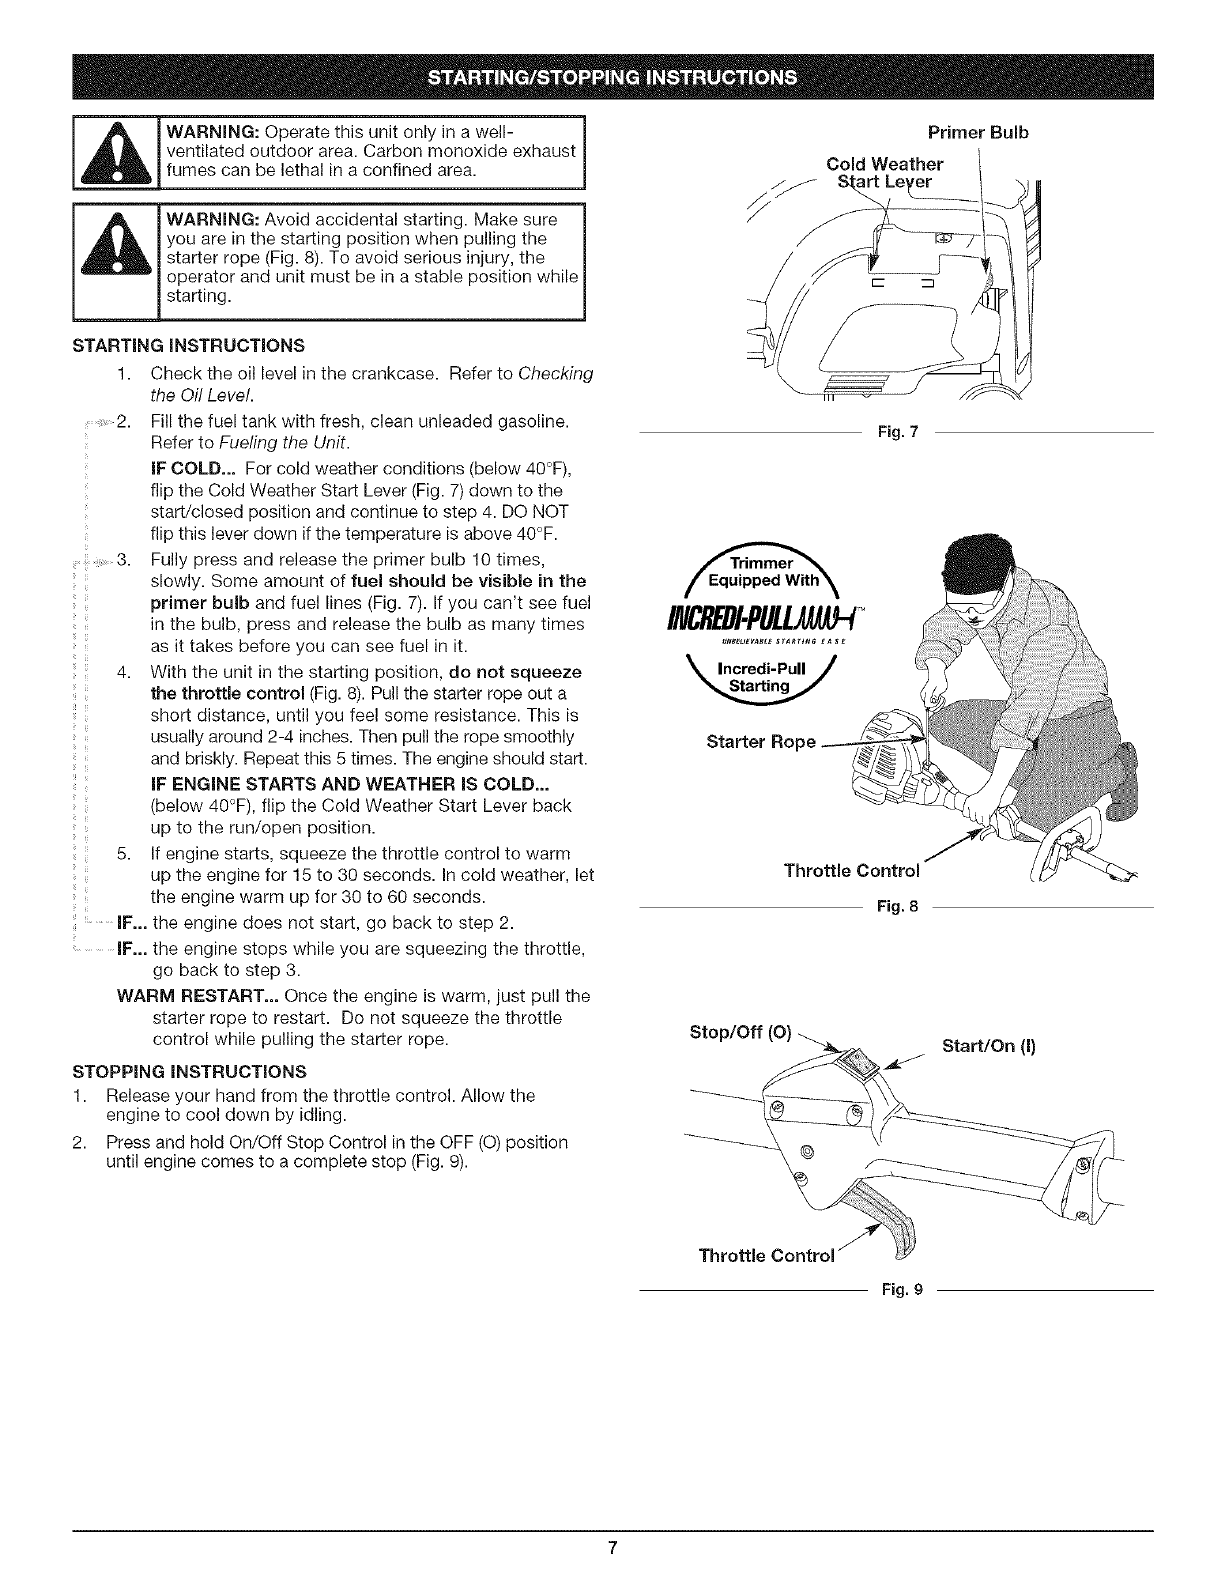 Page 7 of Craftsman Trimmer 316.79197 User Guide